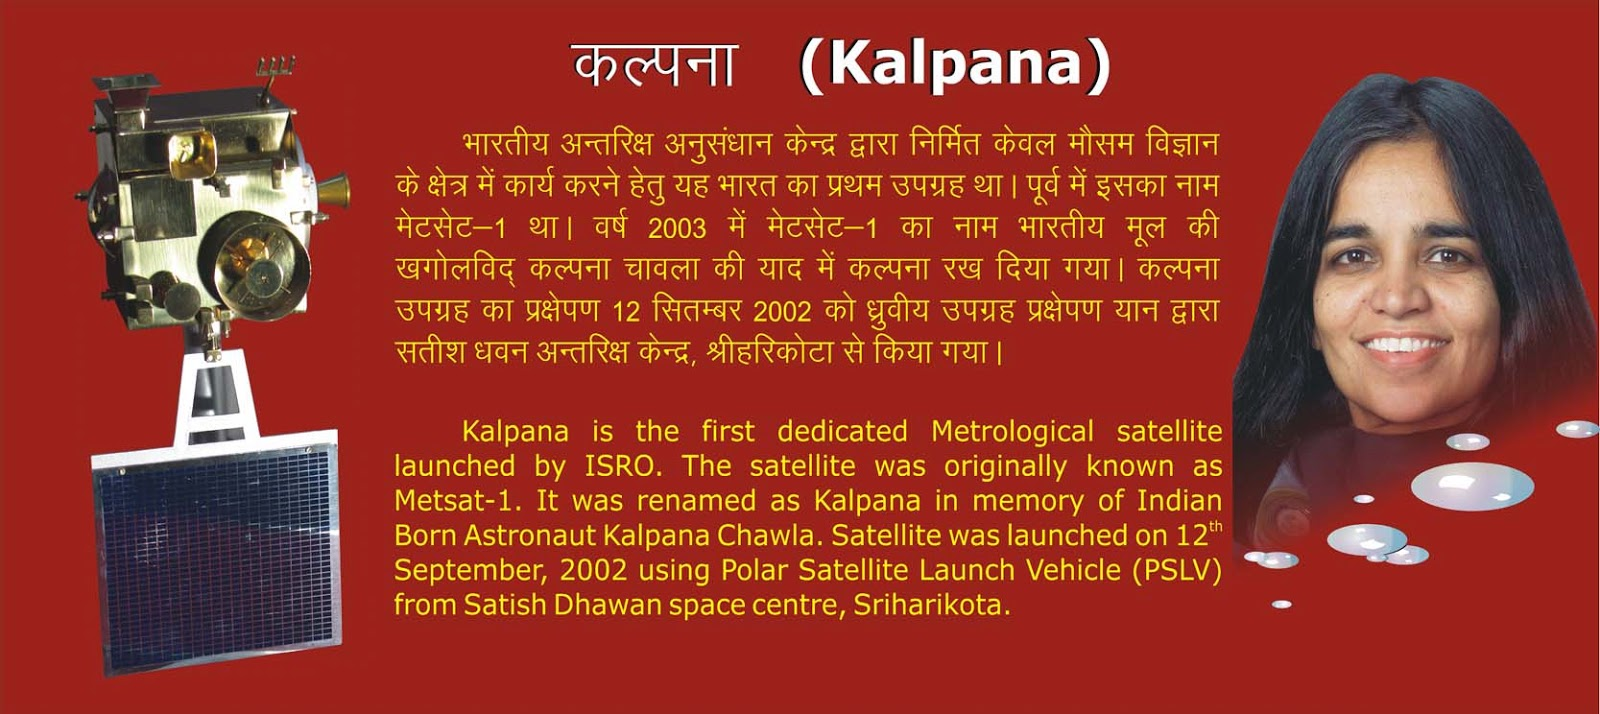 kalpana chawla hindi Here are some interesting facts about this meteor of aerospace: kalpana chawla image: hindiboldskycom 1 when she broke the shackles of male-dominant society kalpana_chawla_as_child she was born on march 17, 1962, in karnal (in the indian state of haryana) she belonged to an average middle-class family.